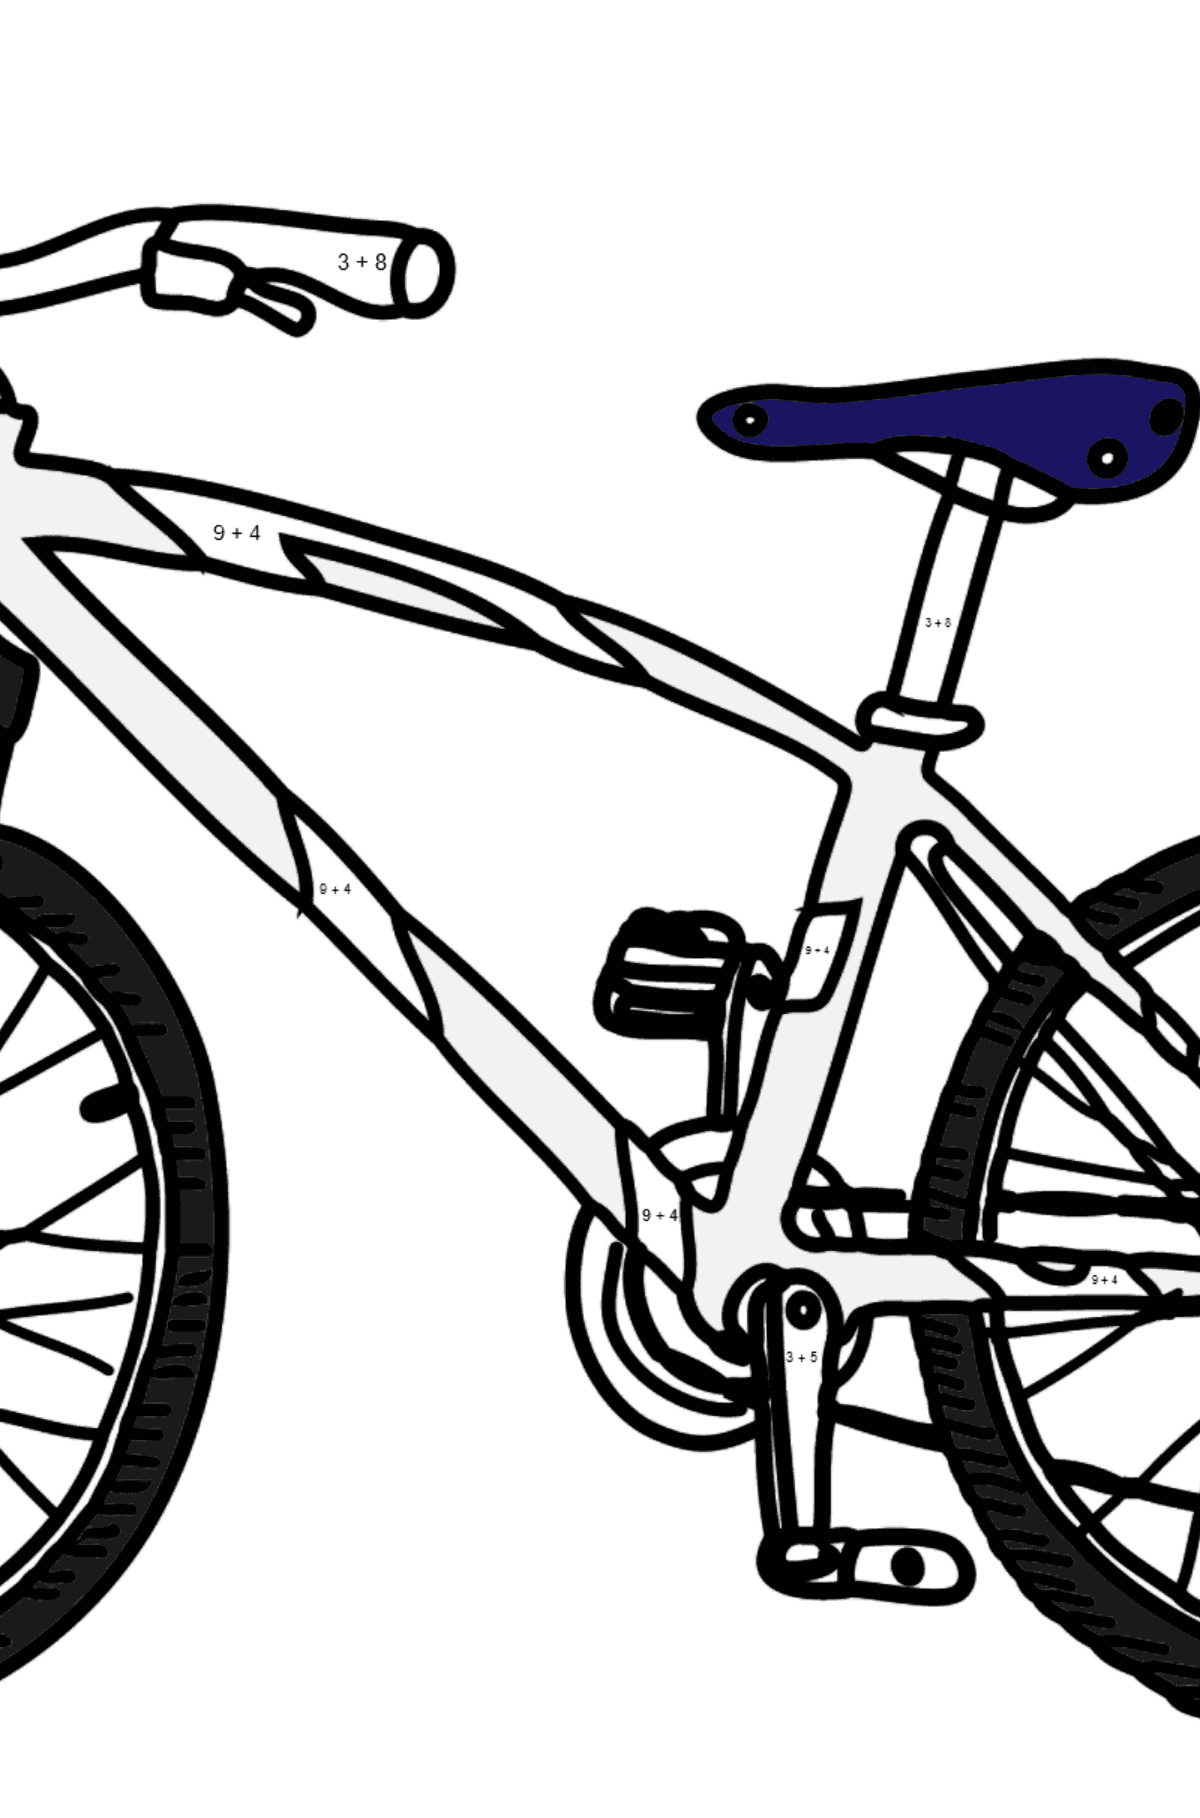 Coloring Page - A Sport Bike - Math Coloring - Addition for Kids